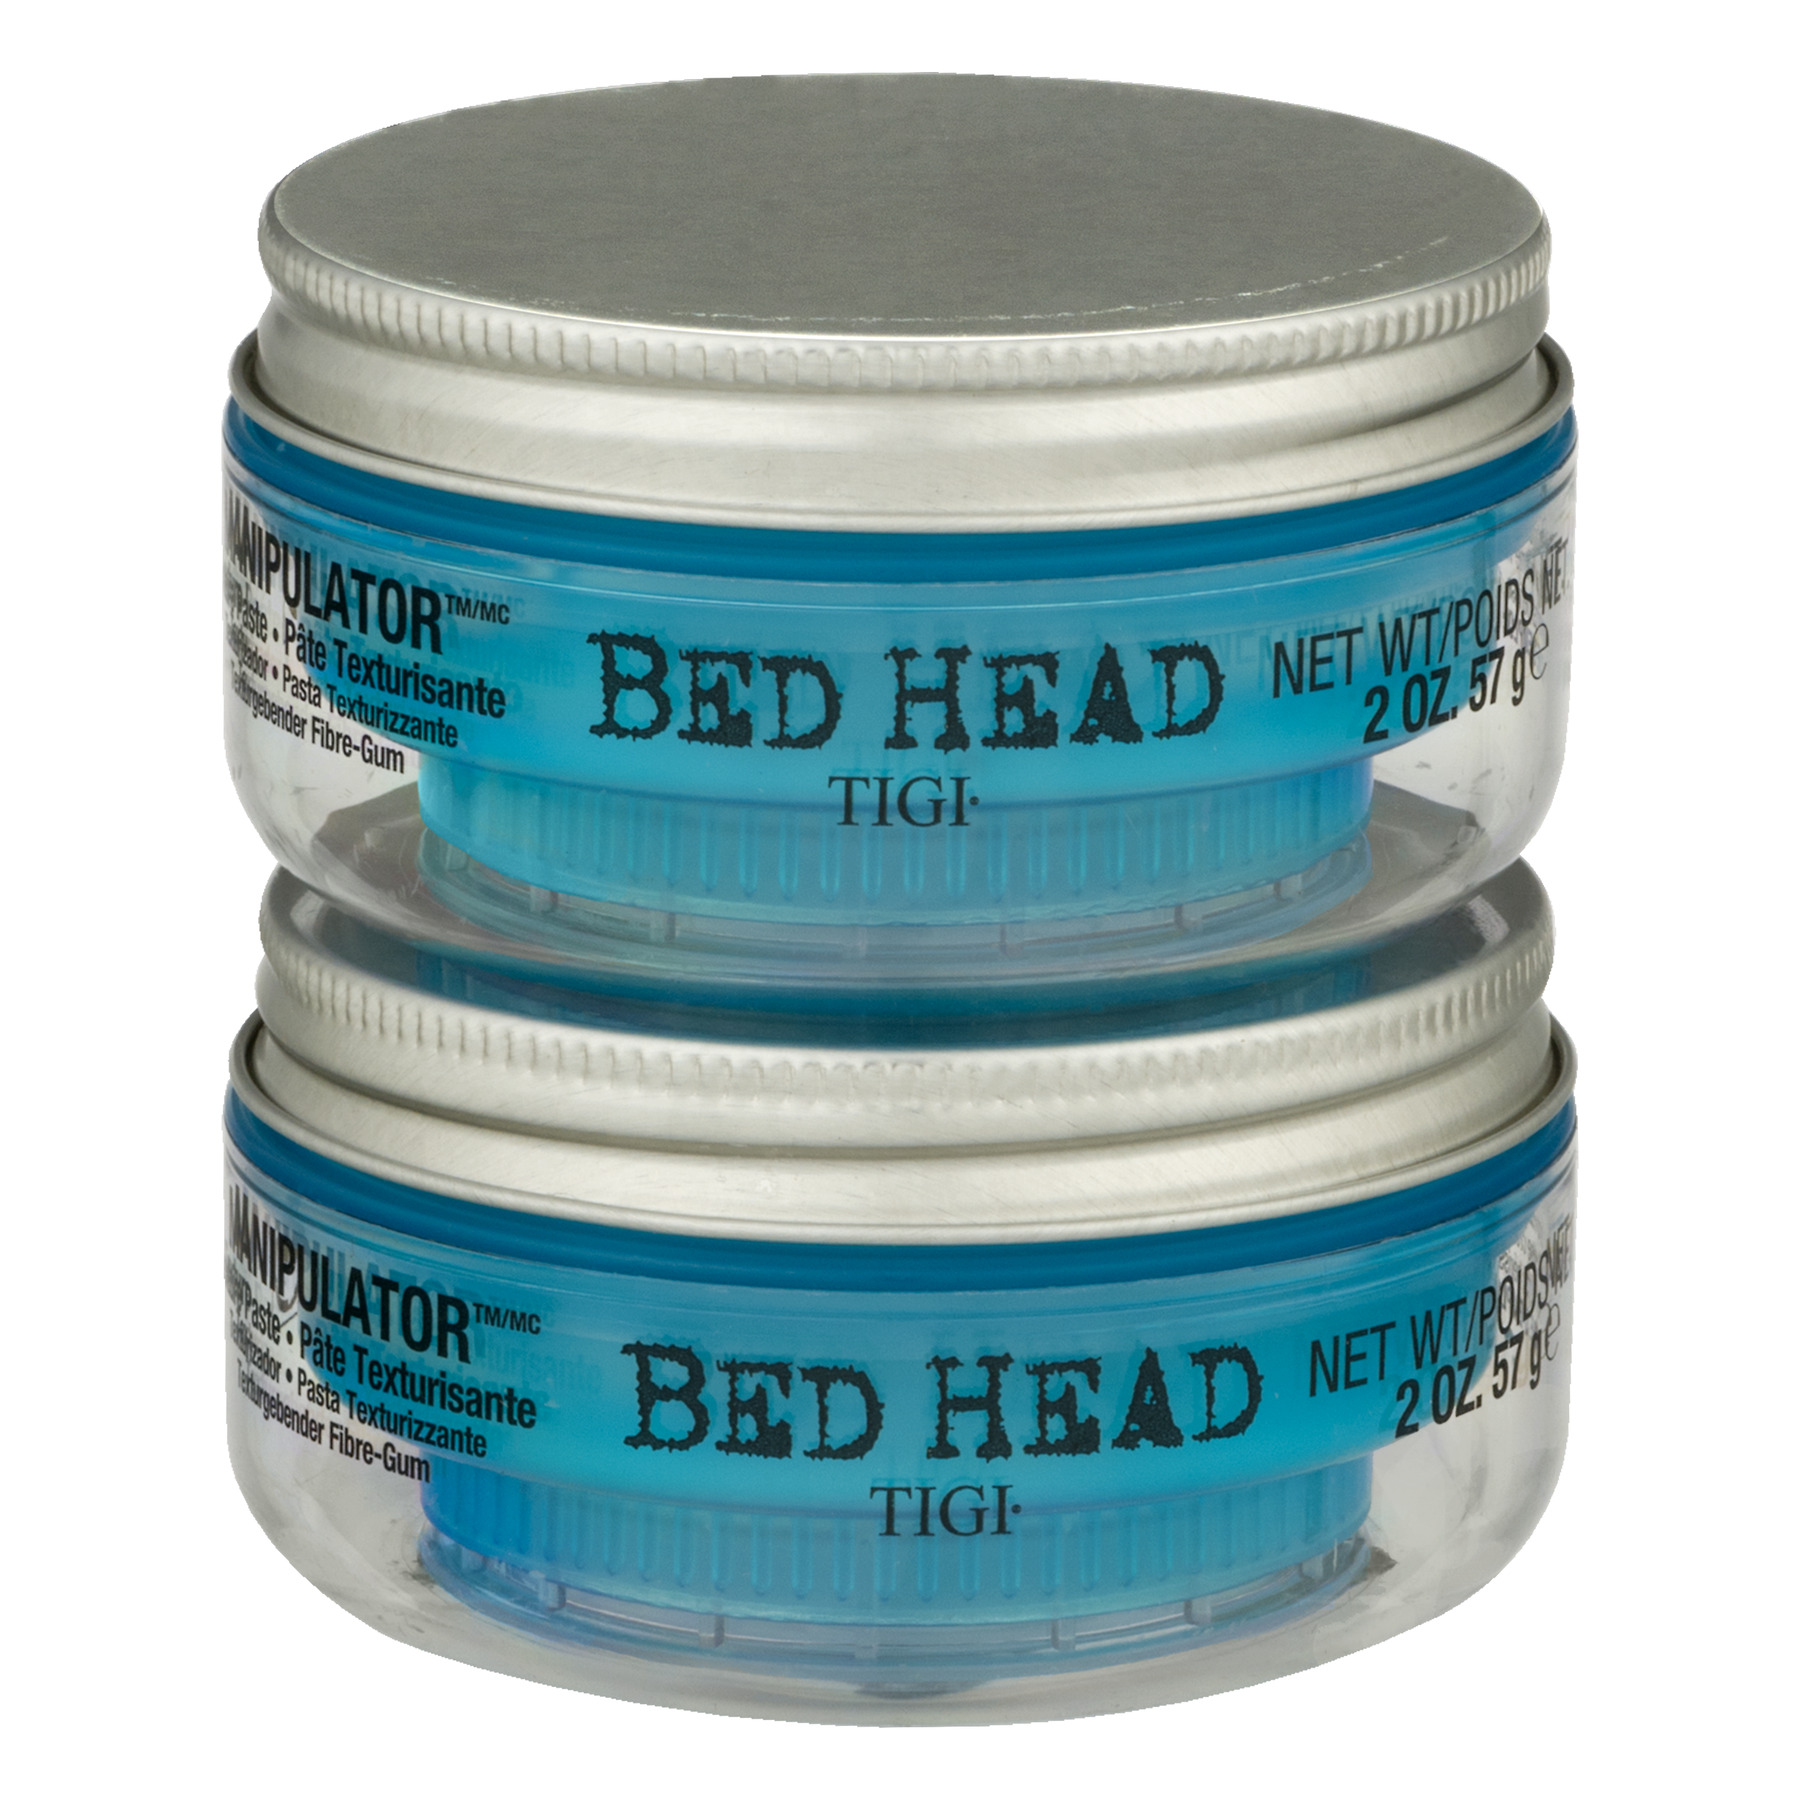 TIGI Bed Head Manipulator Texture Paste, 2.0 OZ